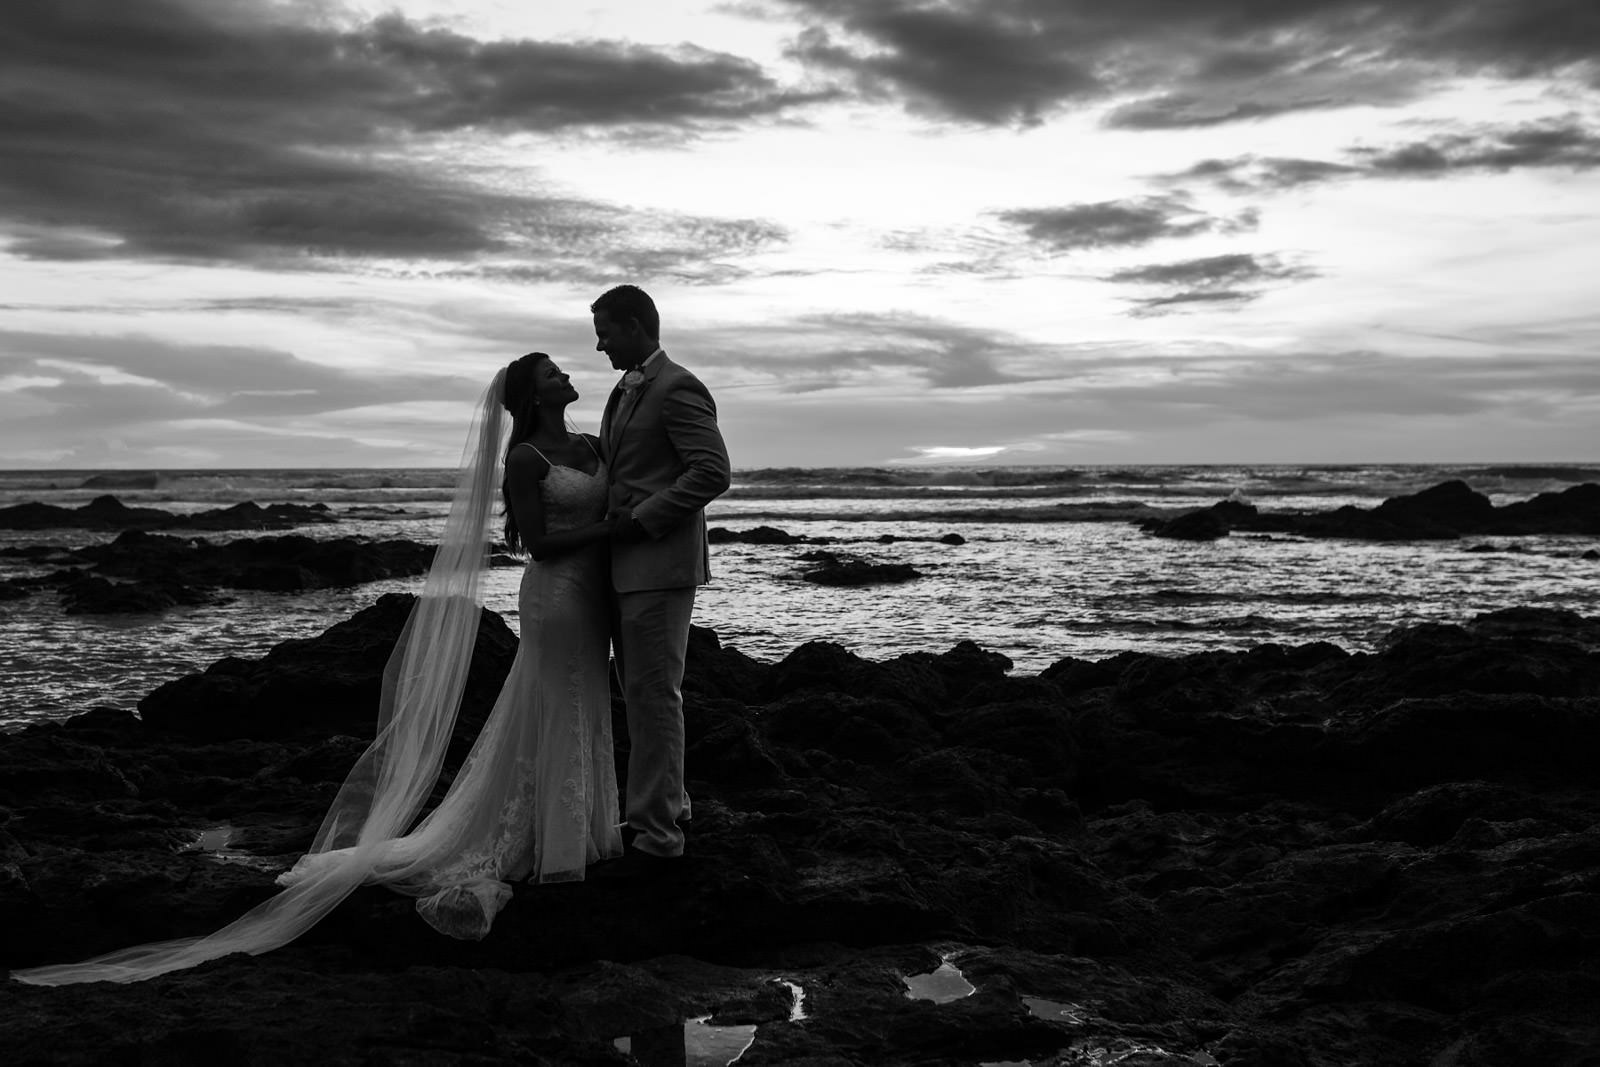 Jackie & Lauren's wedding in Tamarindo at Casa Roca Langosta Beach // Costa Rica Wedding Photographs by FunkyTown Photography